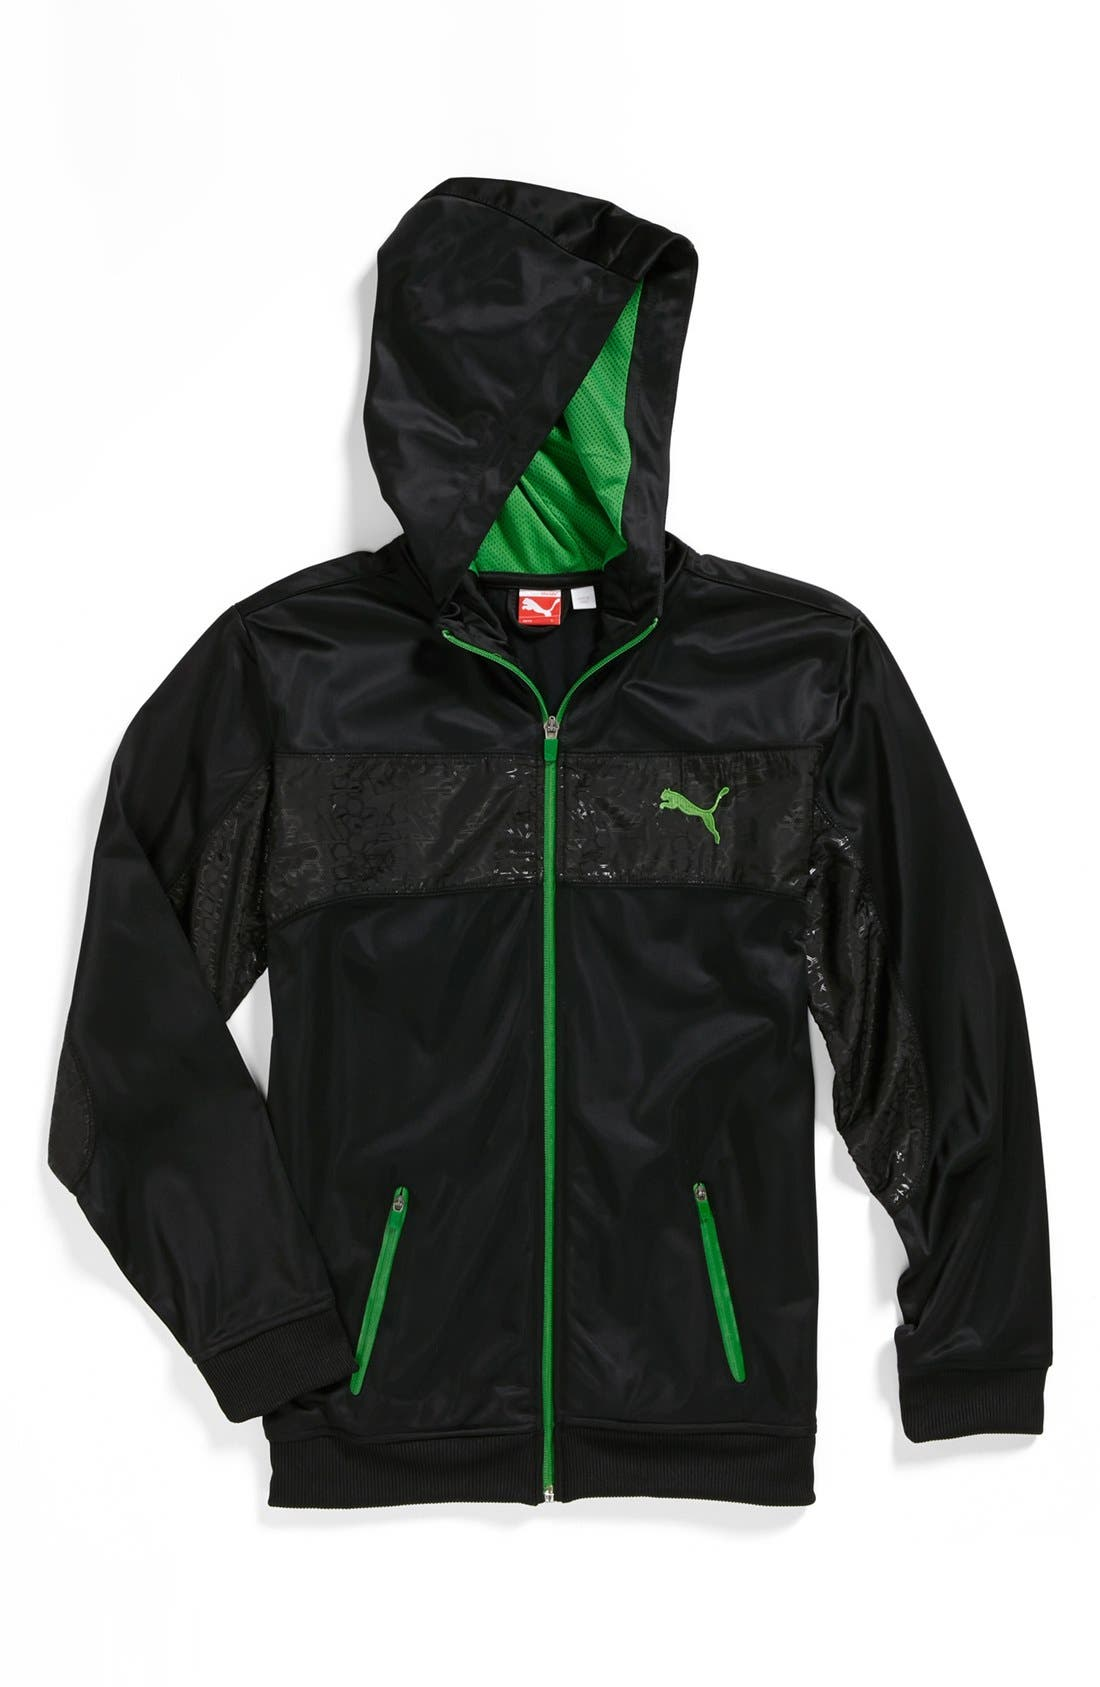 Alternate Image 1 Selected - PUMA Tricot Hooded Jacket (Big Boys)